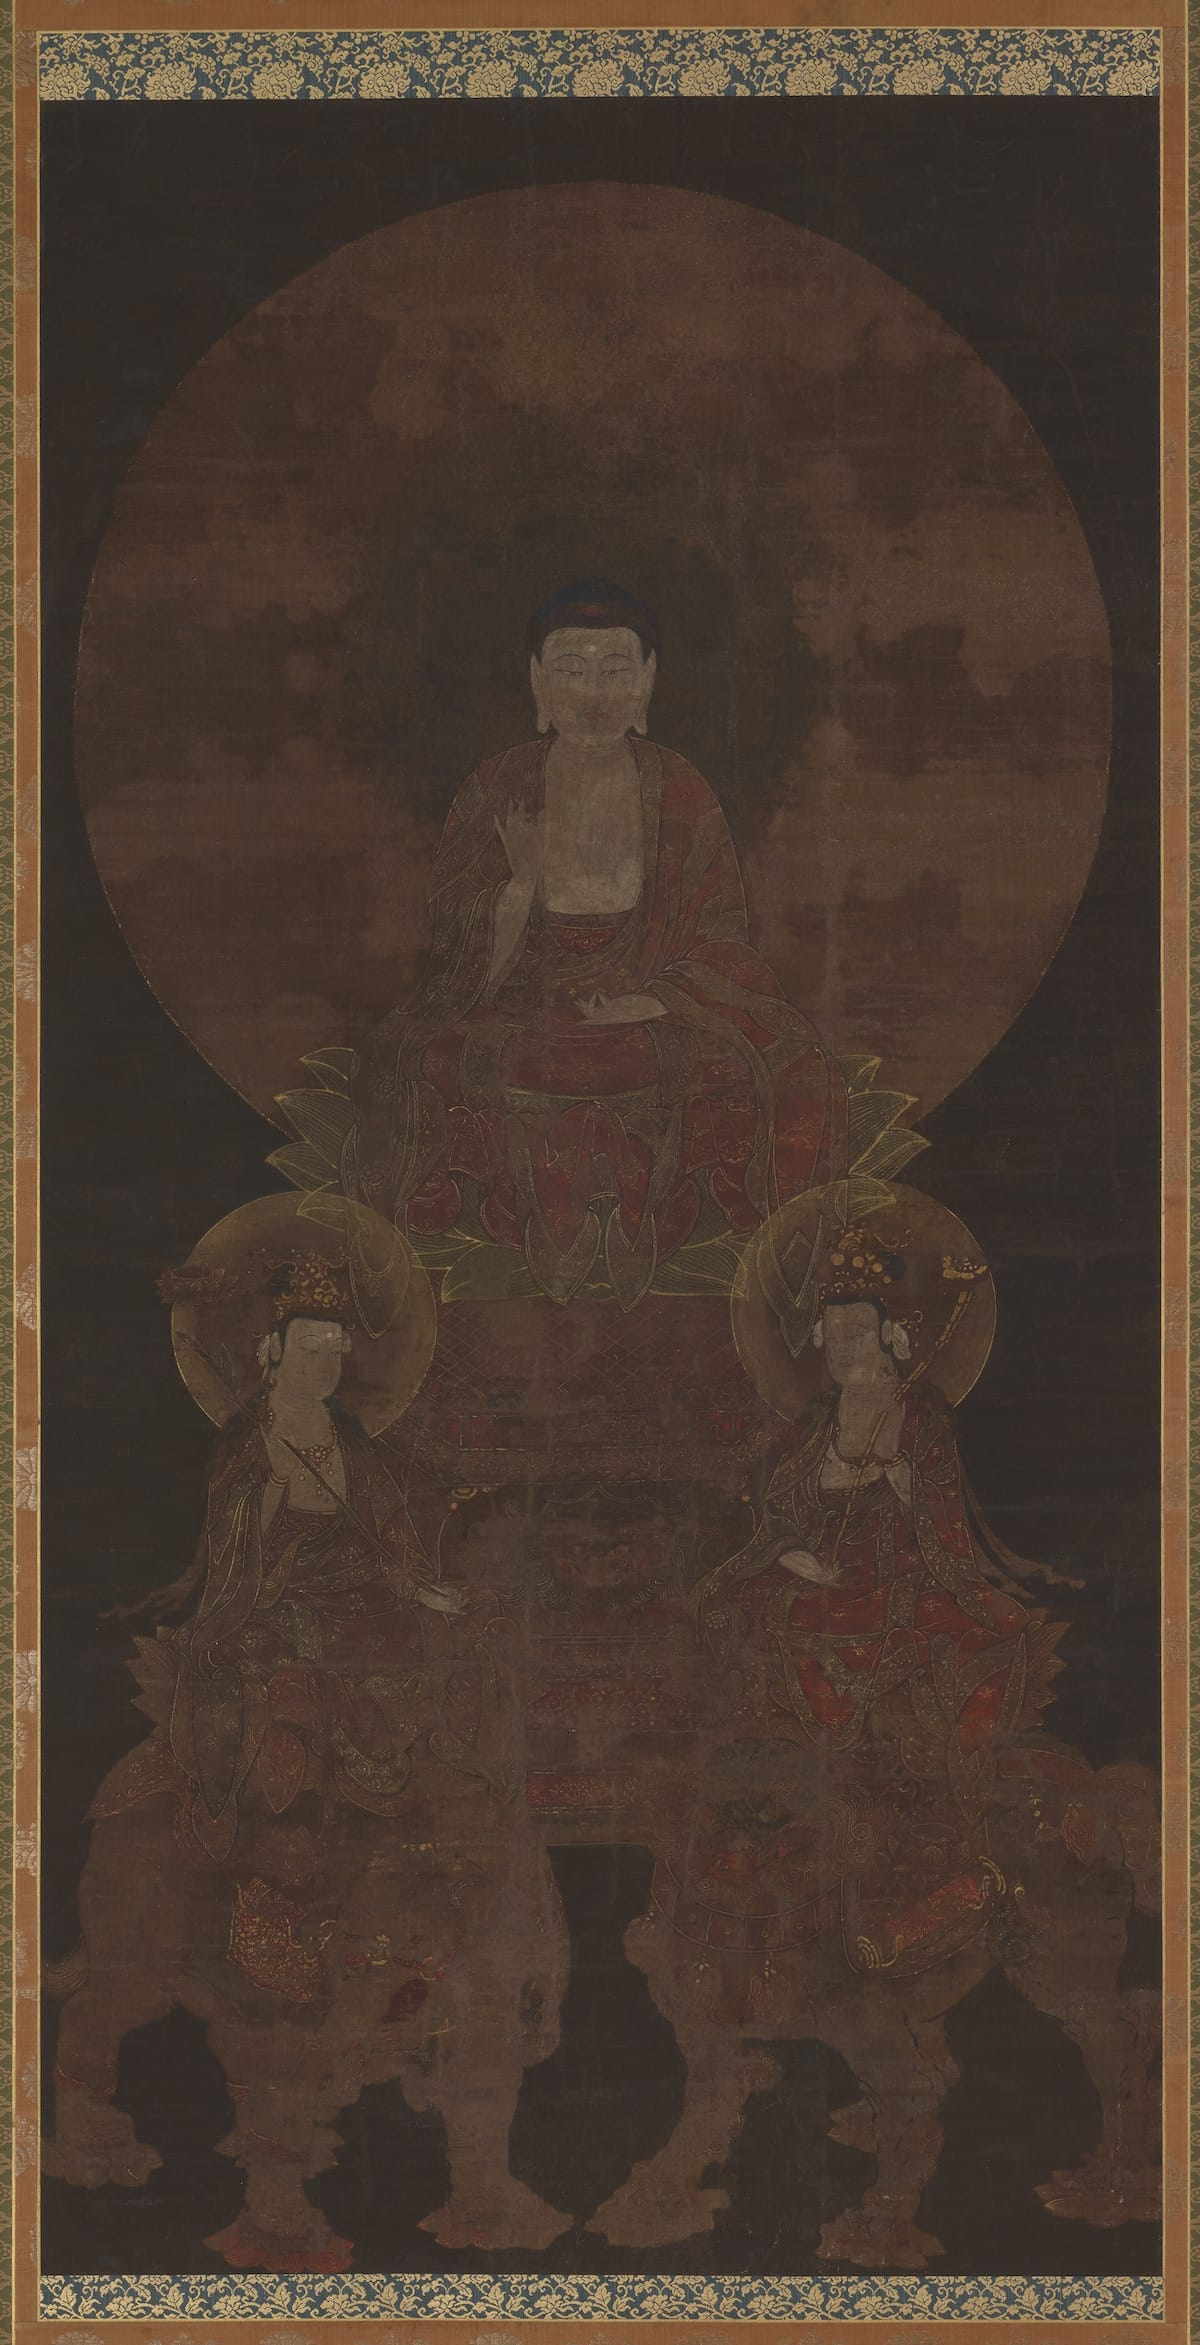 ; Japan; 15th century; Color and gold on silk; H x W: 115.2 x 58.9 cm (45 3/8 x 23 3/16 in); Gift of Charles Lang Freer